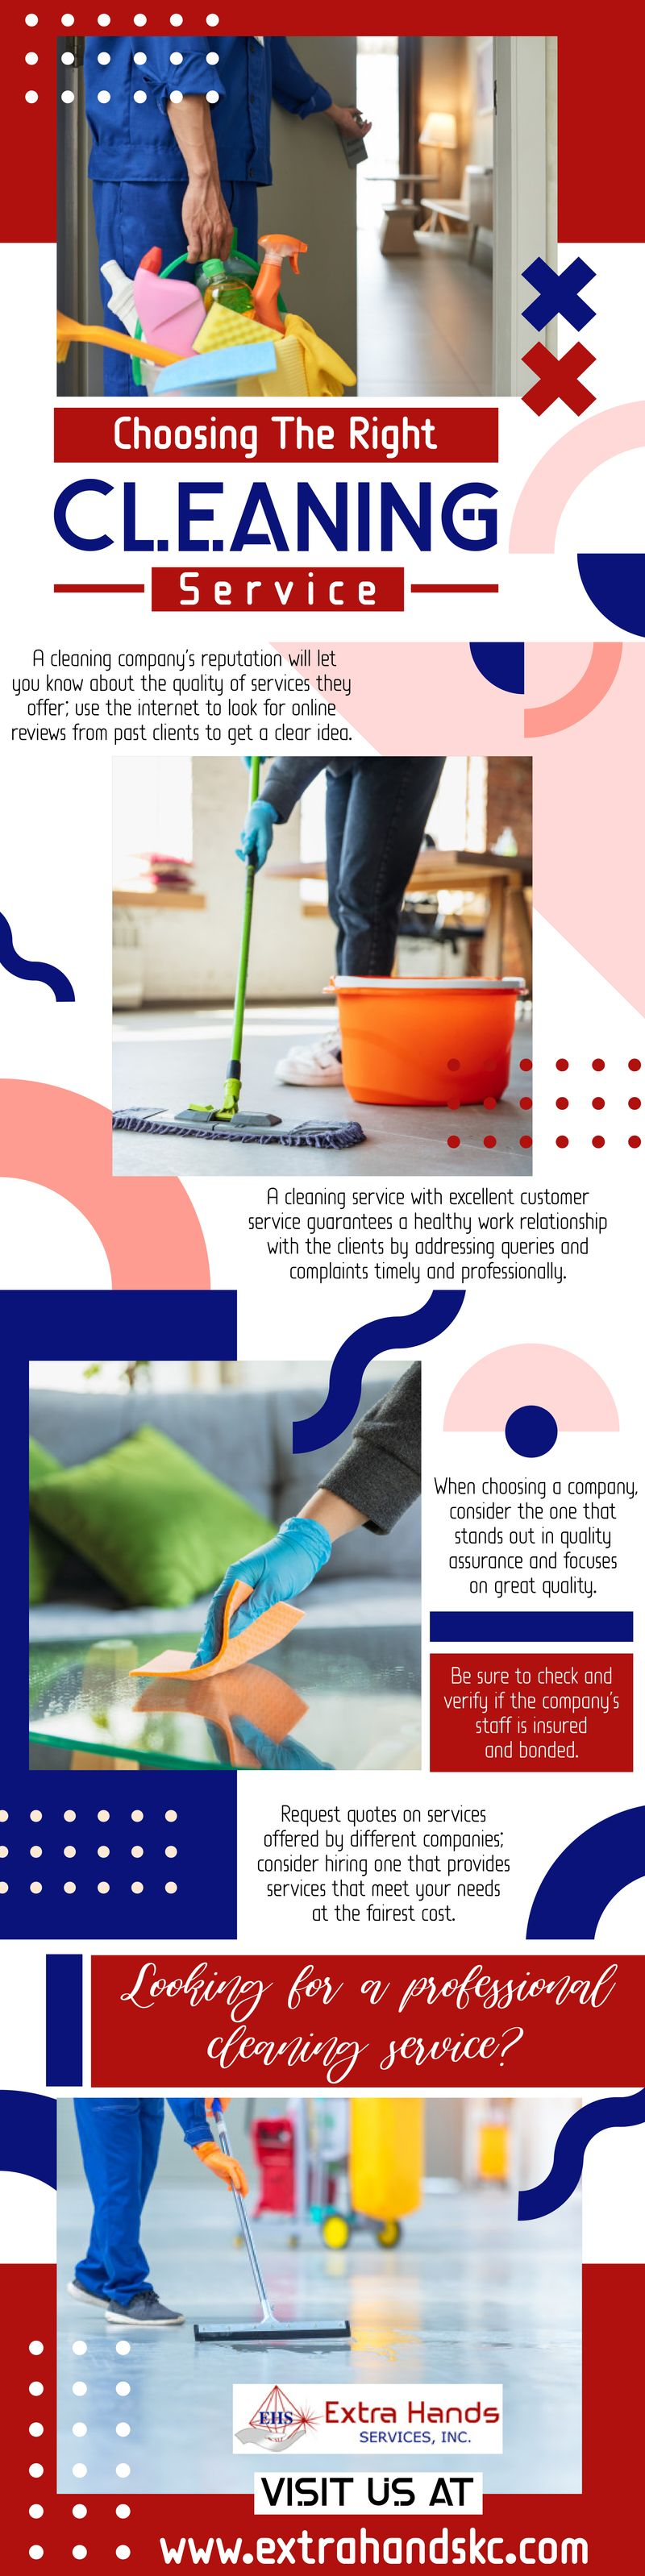 Choosing The Right Cleaning Service